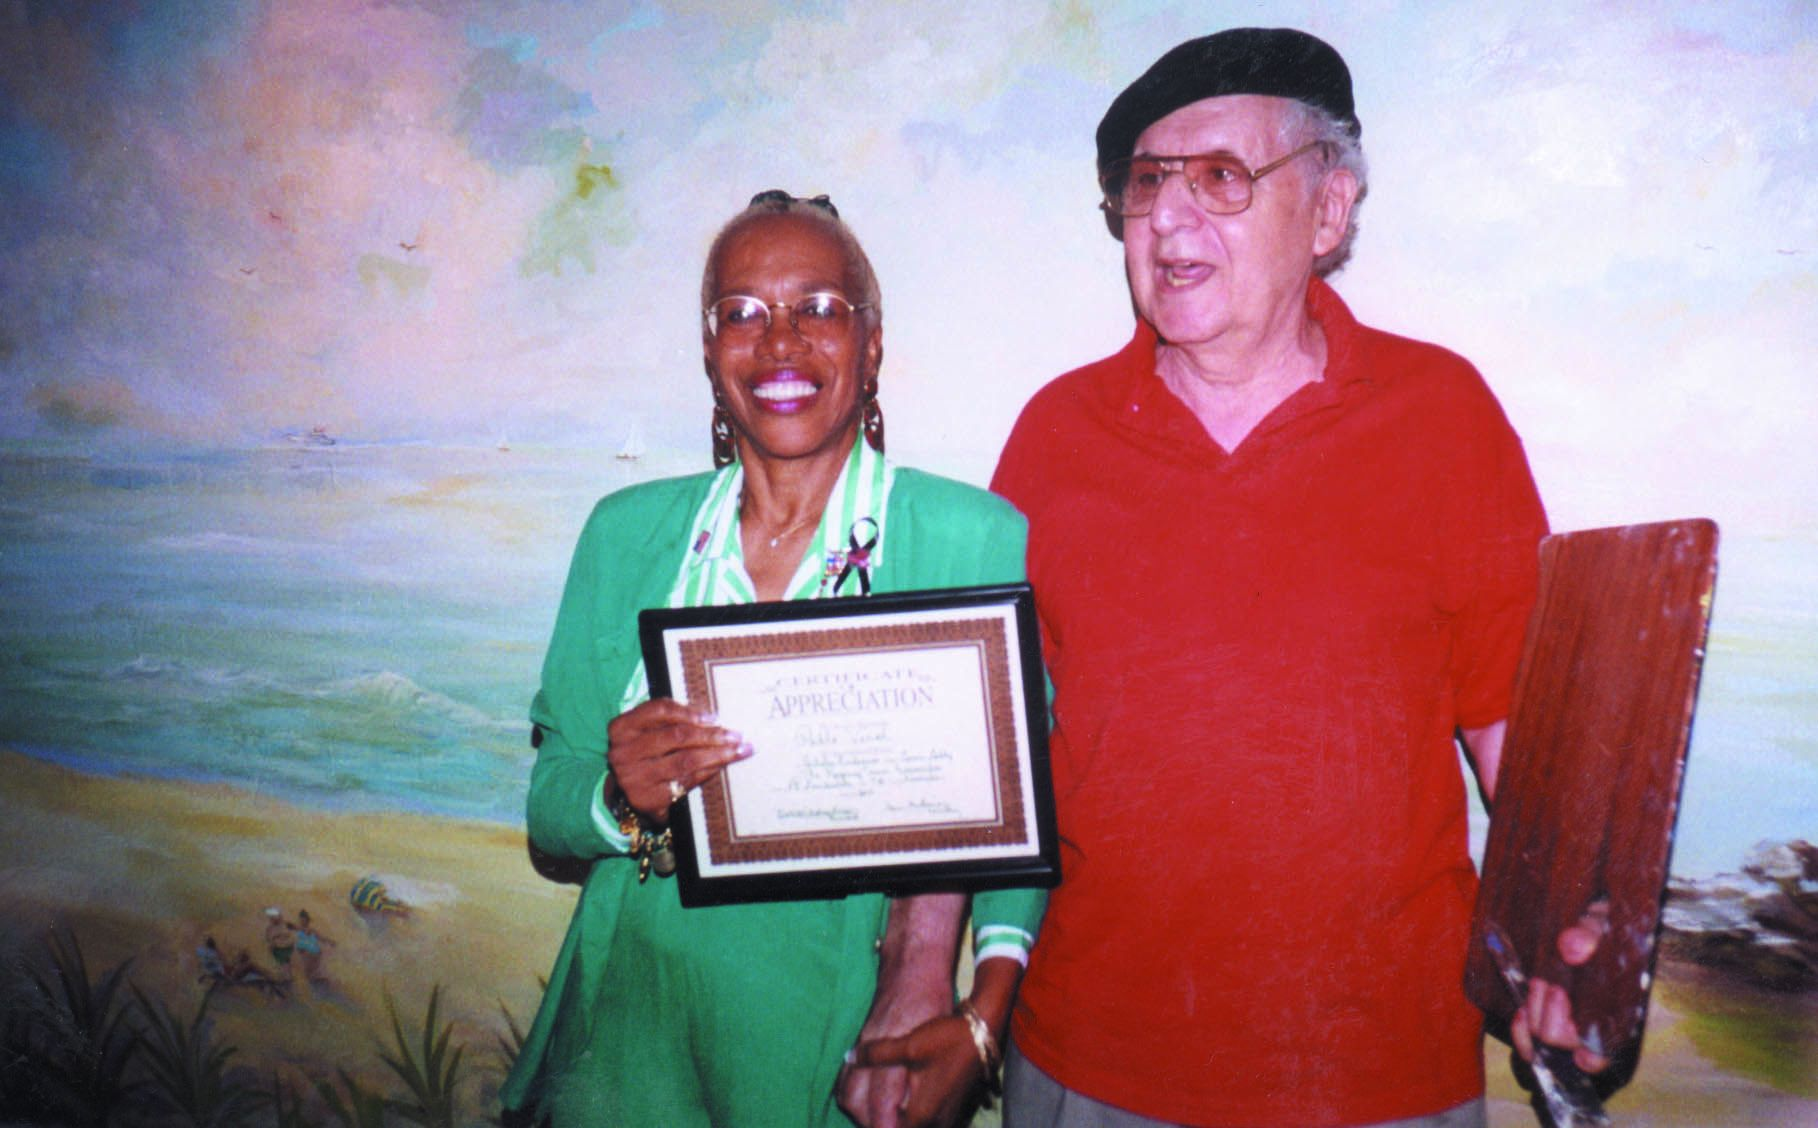 Regency Tower Board President Dott Nicholson-Brown Presents Board Member Pablo Verol with a Certificate of Appreciation while Standing before the Mural he Painted in the Garage Elevator Lobby